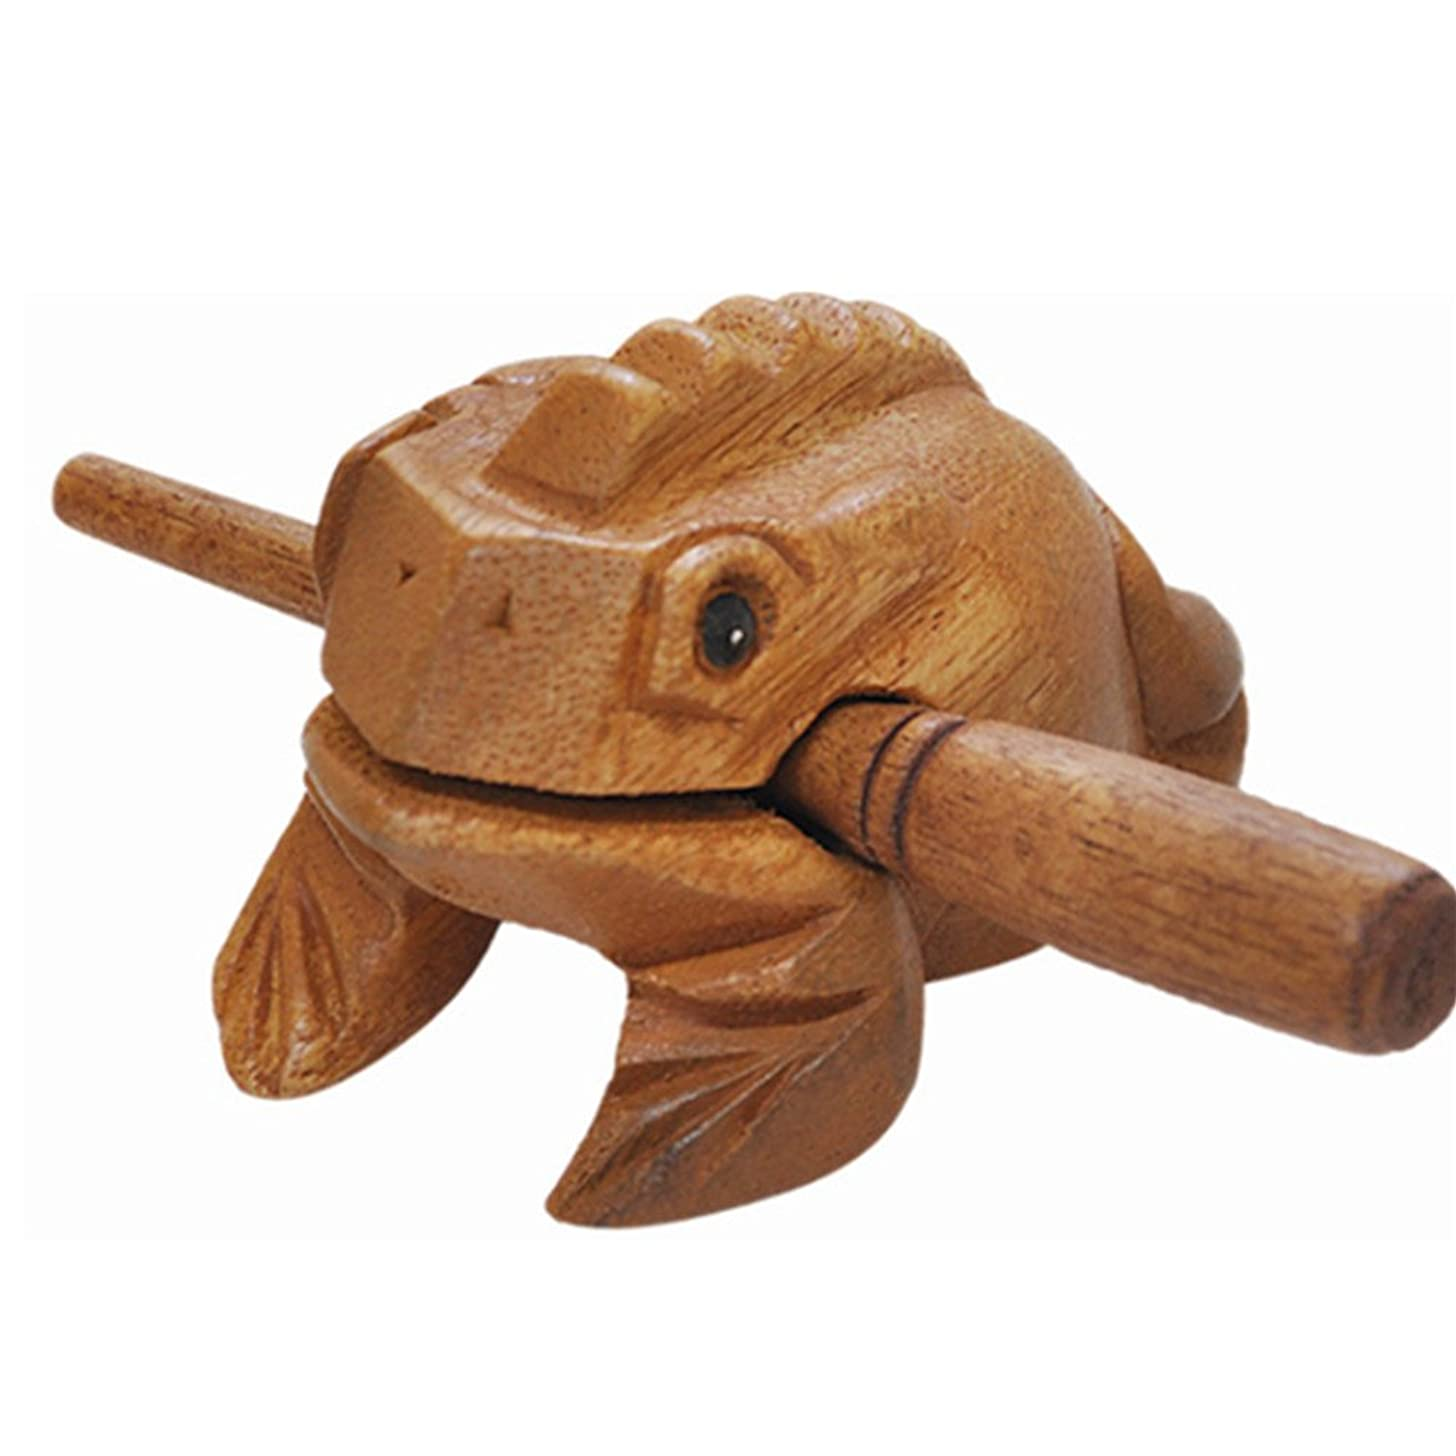 FILY Wood Frog Guiro Rasp Hand-Carved Lucky Frog Made of Wood,Wooden Frog Percussion Instrument,Wooden Frog Statue Toy Decoration